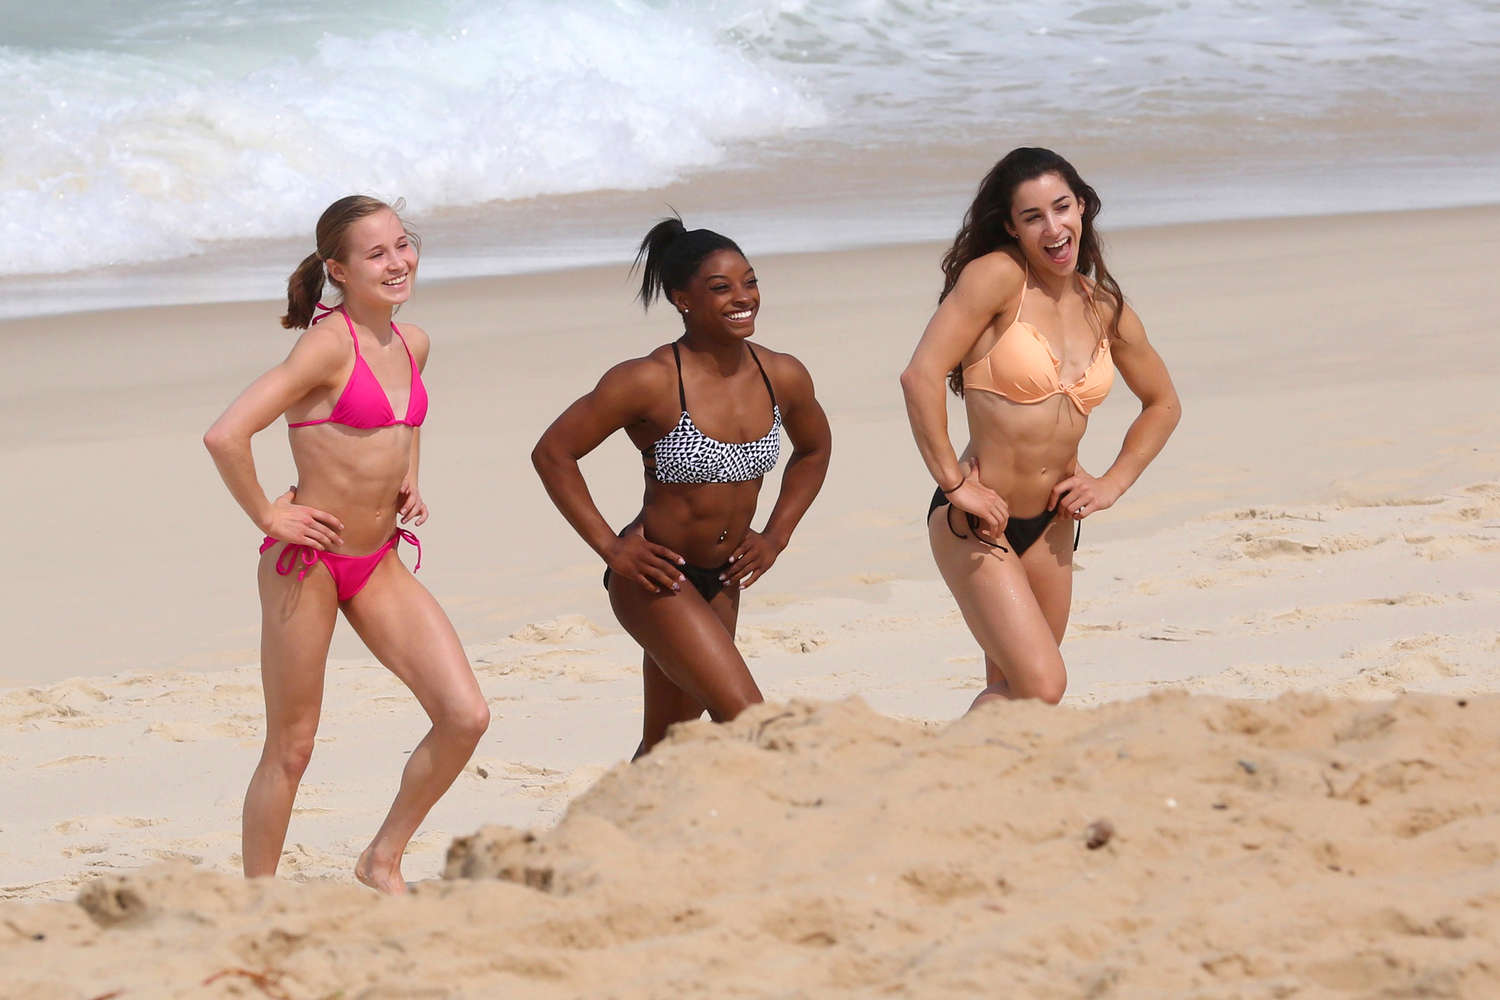 Aly Raisman and Simone Biles SI Swimsuit 2019 naked (69 pictures)